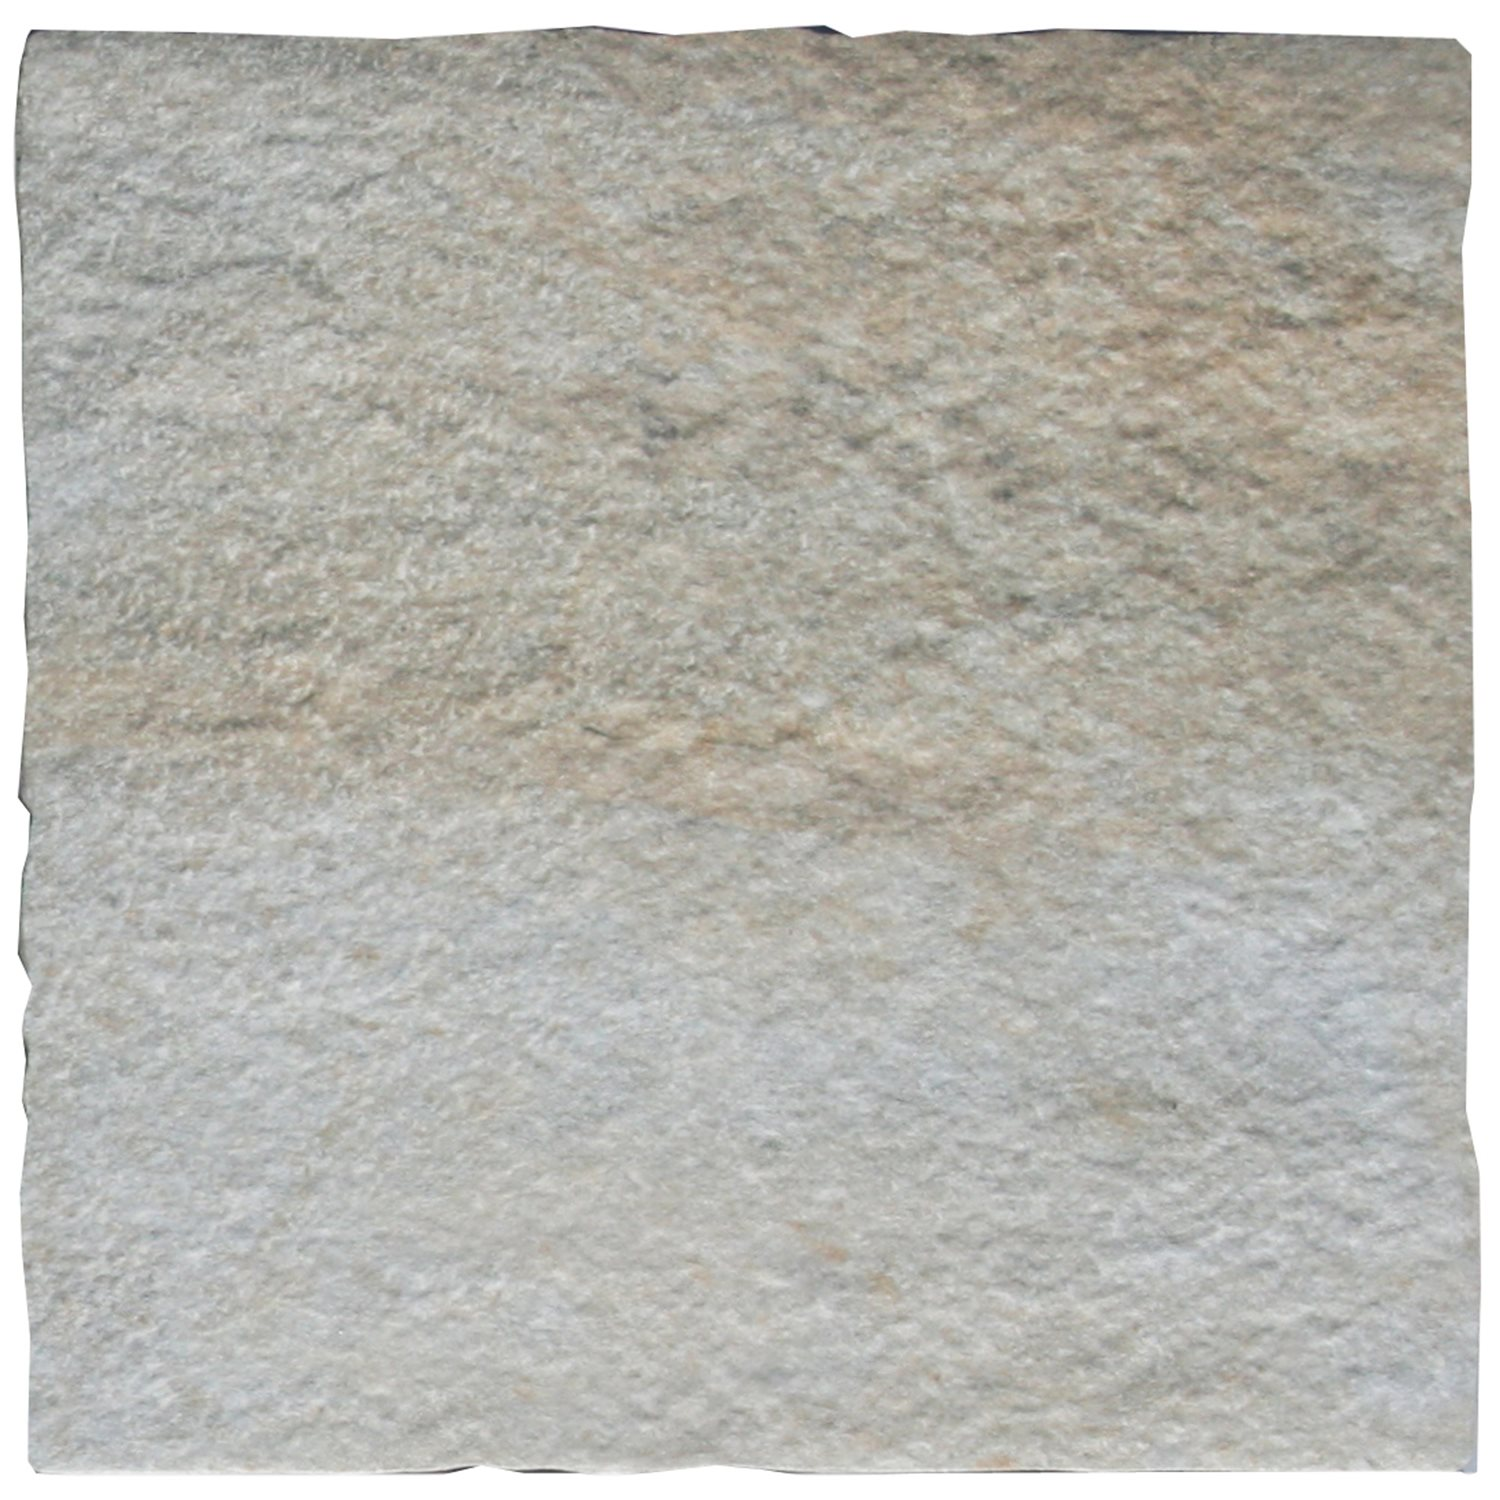 Floor Tiles Acapulco Natural Stone Optic Grey 21,6x21,6cm